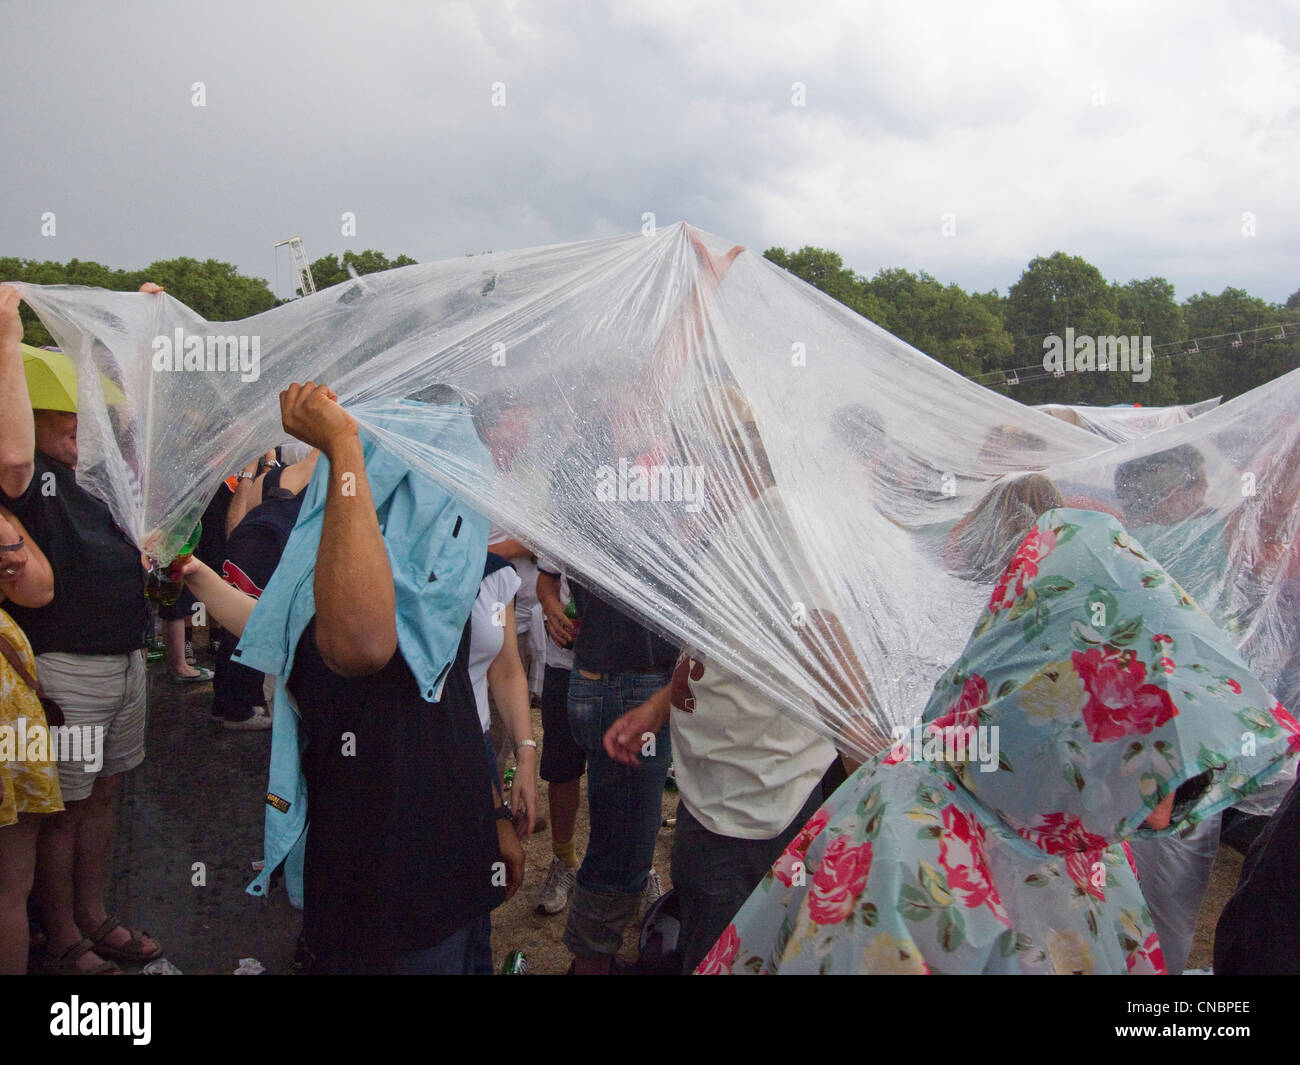 A crowd sheltering from the rain under a sheet of plastic at an outdoor concert - Stock Image